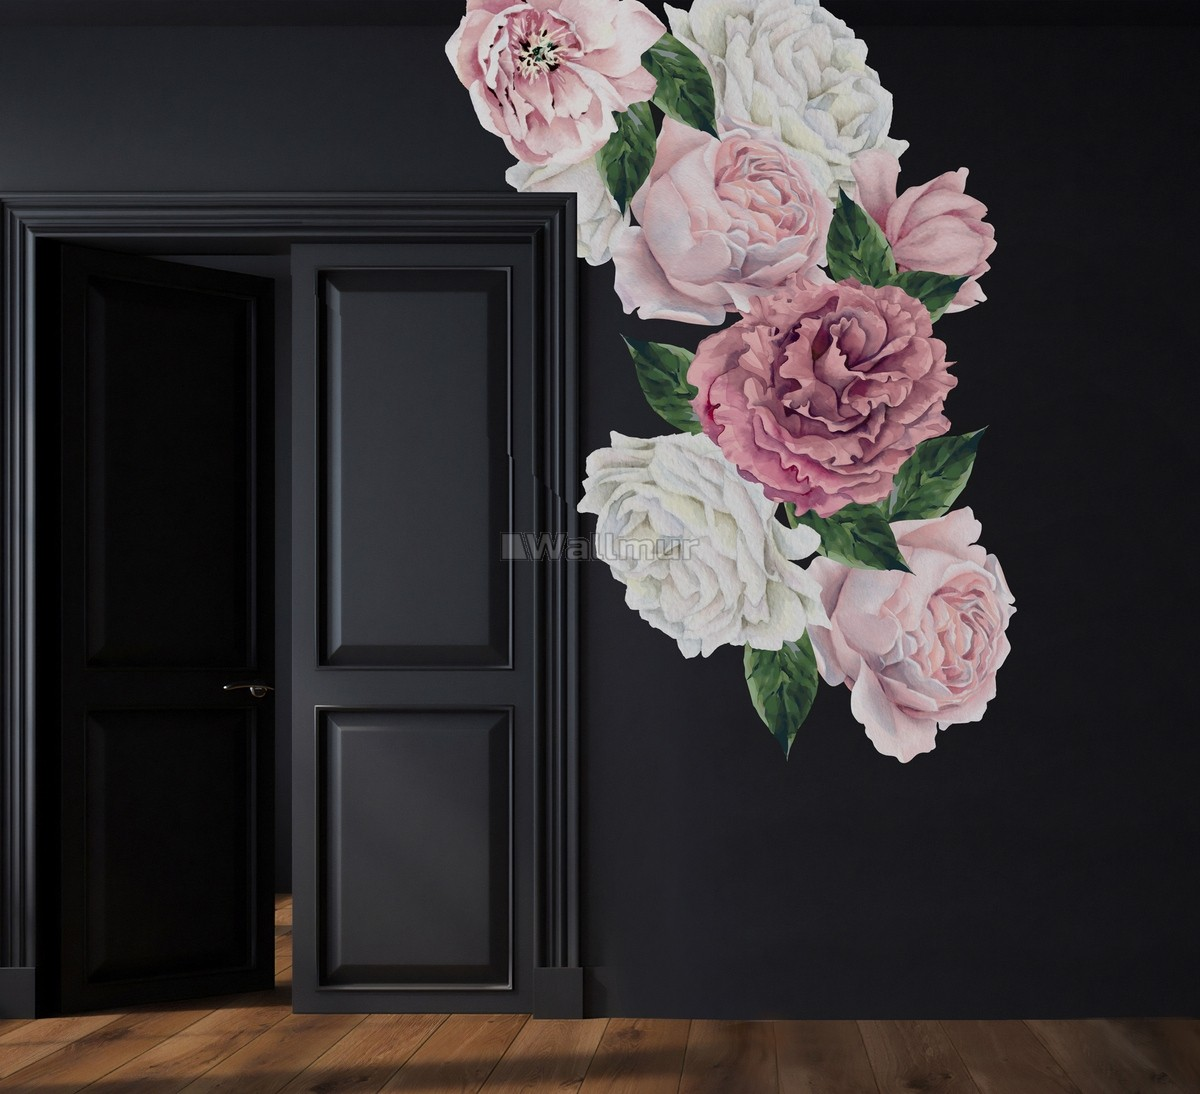 Watercolor Pink and White Peony Floral Bouqet with Rosebud Wall Decal Sticker